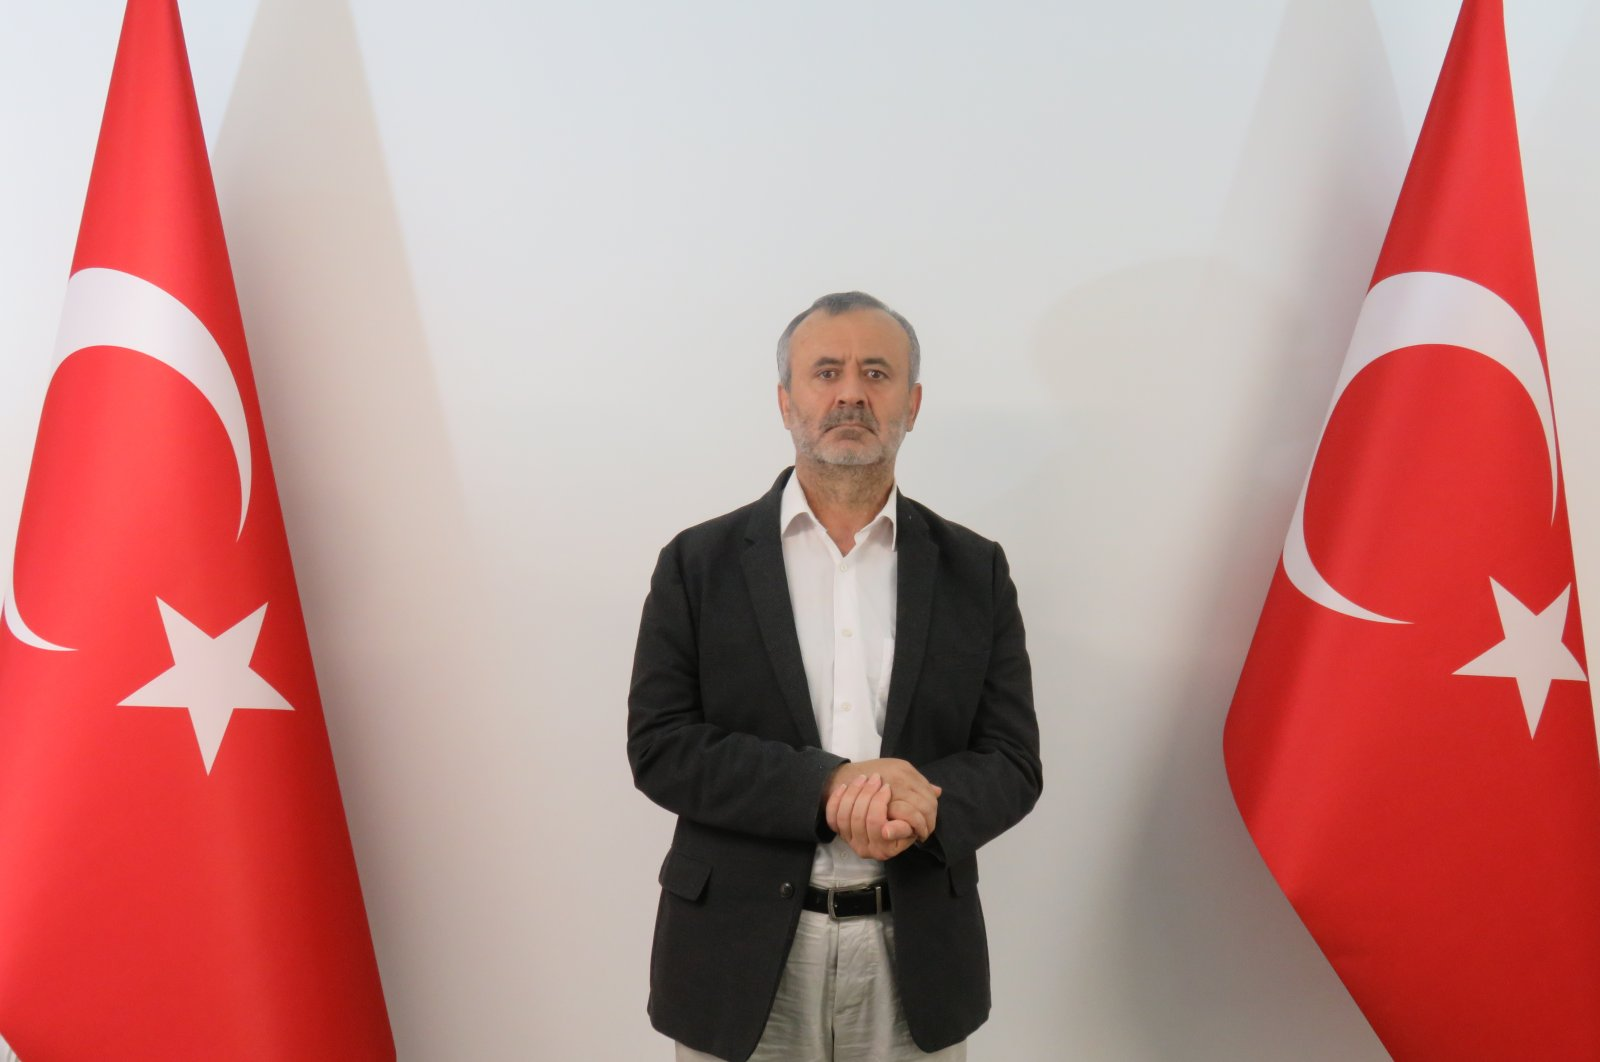 Orhan Inandı poses between two Turkish flags in this photo handed out to the media after he was brought to Turkey, July 5, 2021. (AA PHOTO)